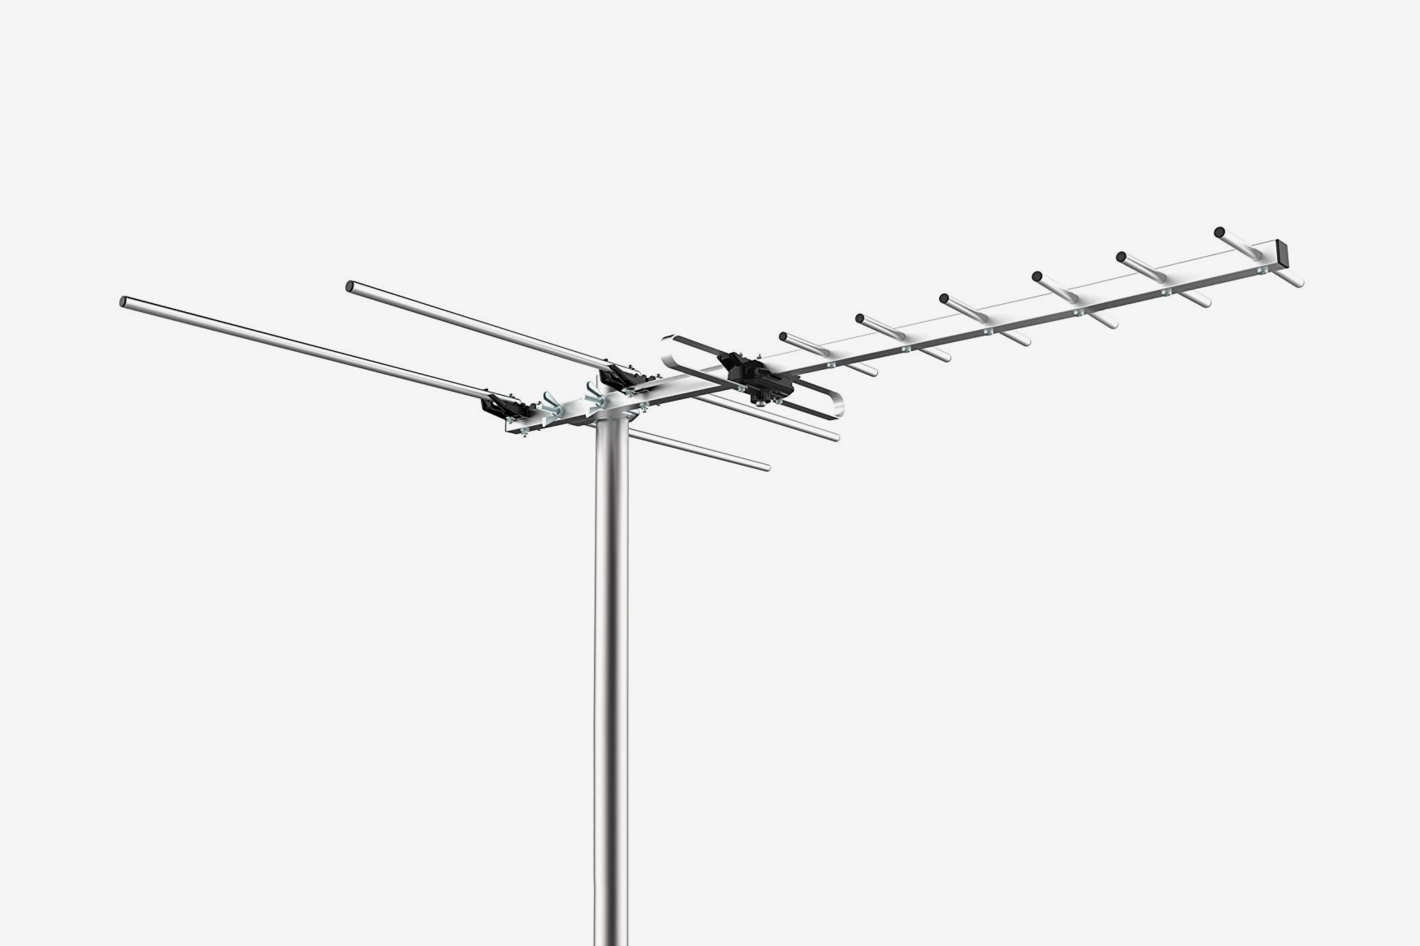 Best ideas about Ge Pro Outdoor Antenna . Save or Pin Top 10 Best GE PRO Outdoor Antenna 70 Miles parison Now.